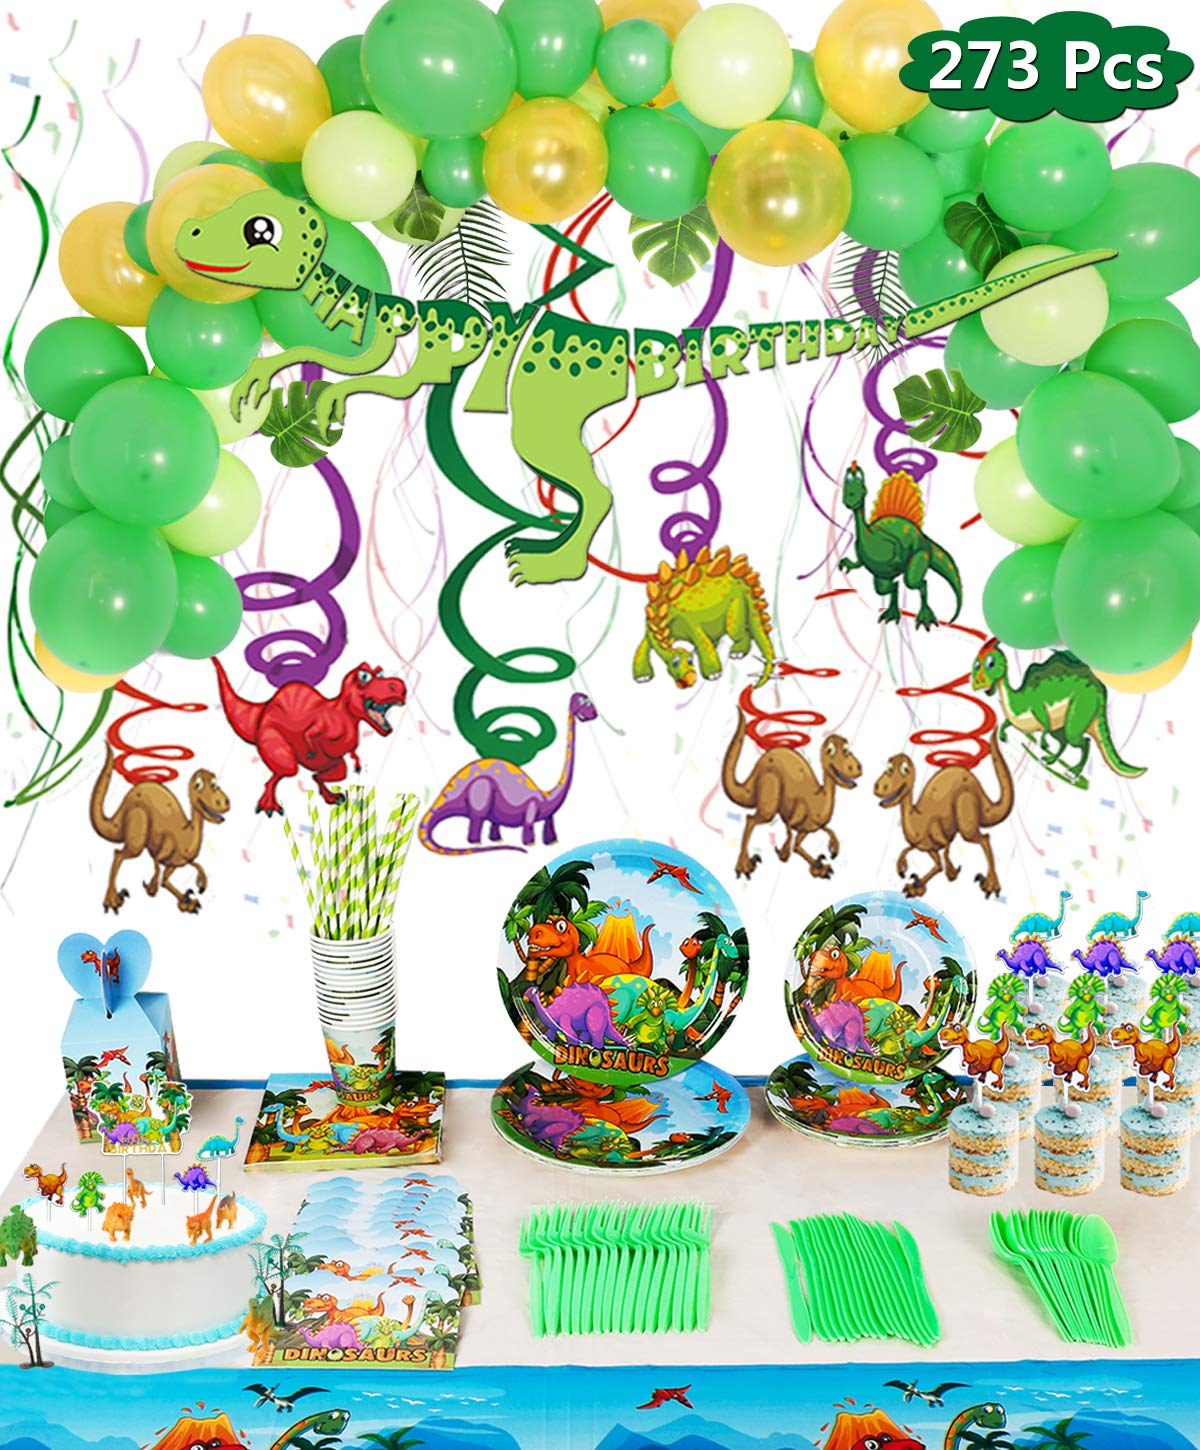 273 Pack Dinosaur Party Supplies Set Serves 16, Dinosaur Birthday Favors Packs Includs Spoons, Plates, Tablecloth, Cups, Straws, Napkins, Invitation cards, Candy Box, Banner, Toys by Genovega